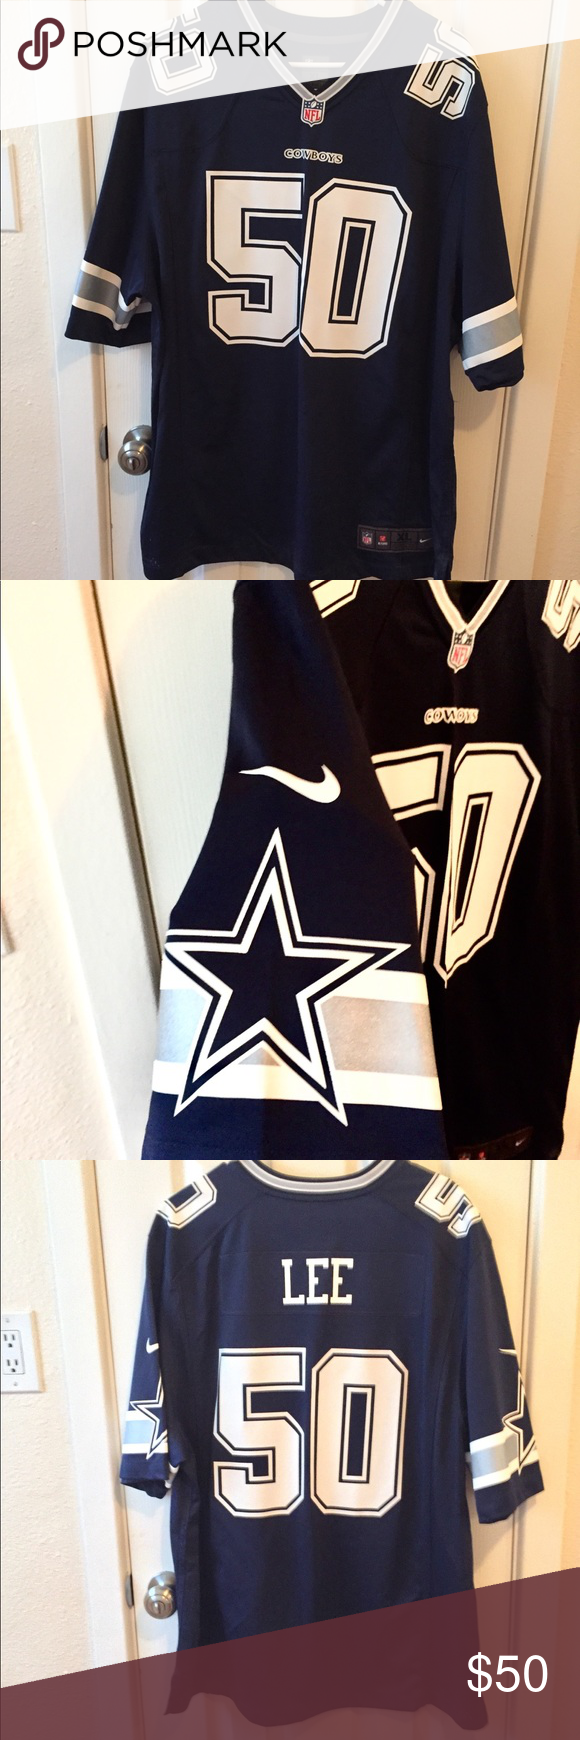 online store 77ea0 1c0c3 Dallas Cowboys Sean Lean Authentic Jersey Brand New Jersey ...